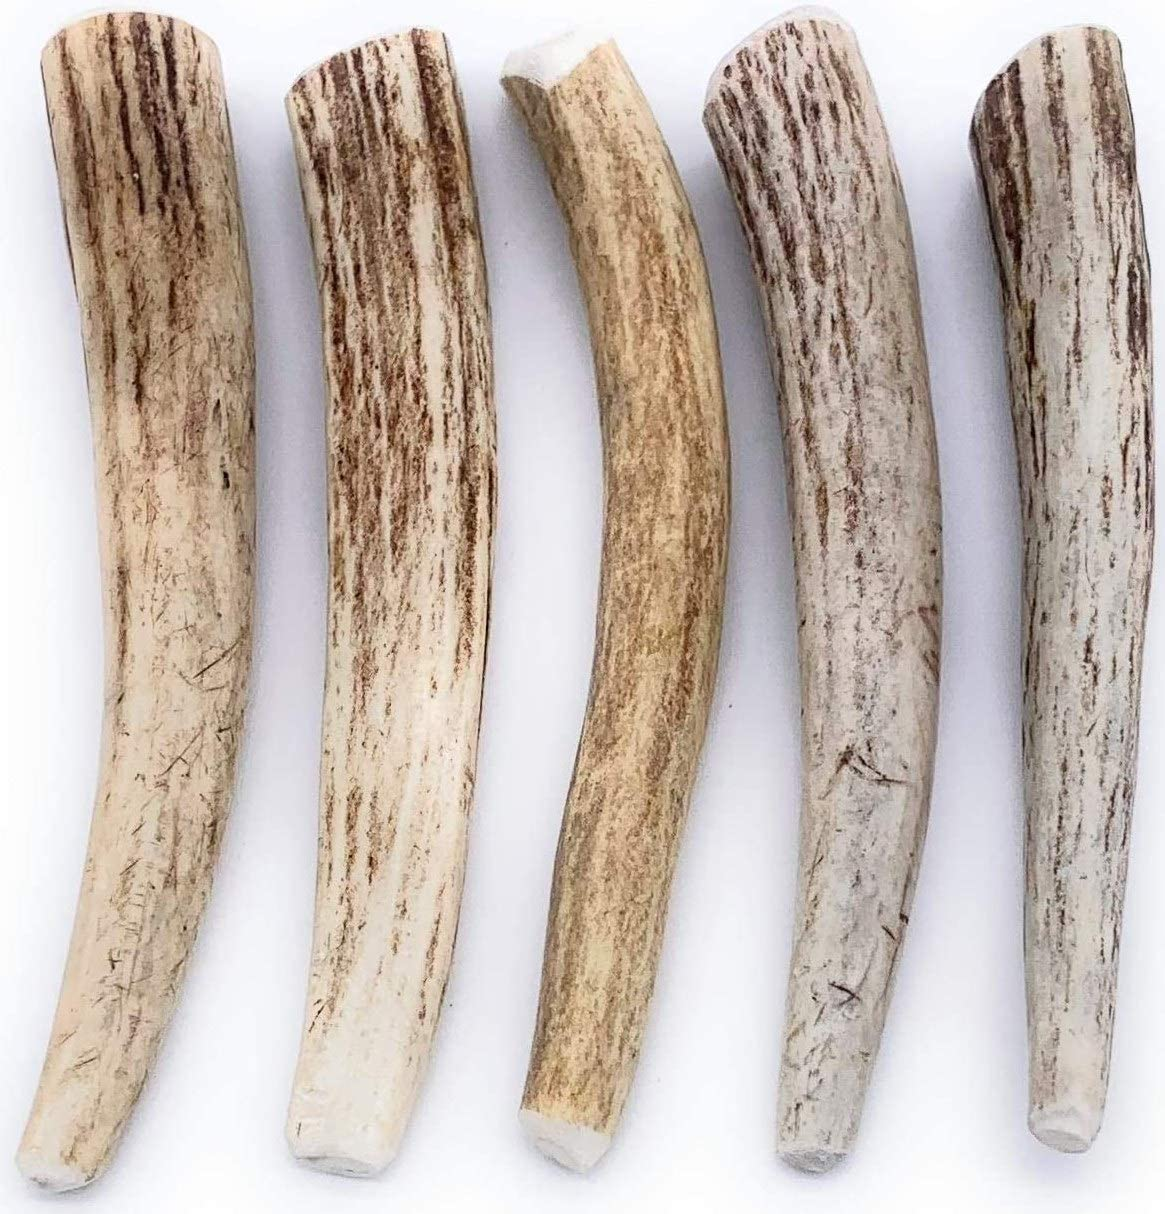 Perfect Pet Chews Deer Antler Dog Chew – Grade A, All Natural, Organic, and Long Lasting Treats – Made from Naturally Shed Antlers in The USA